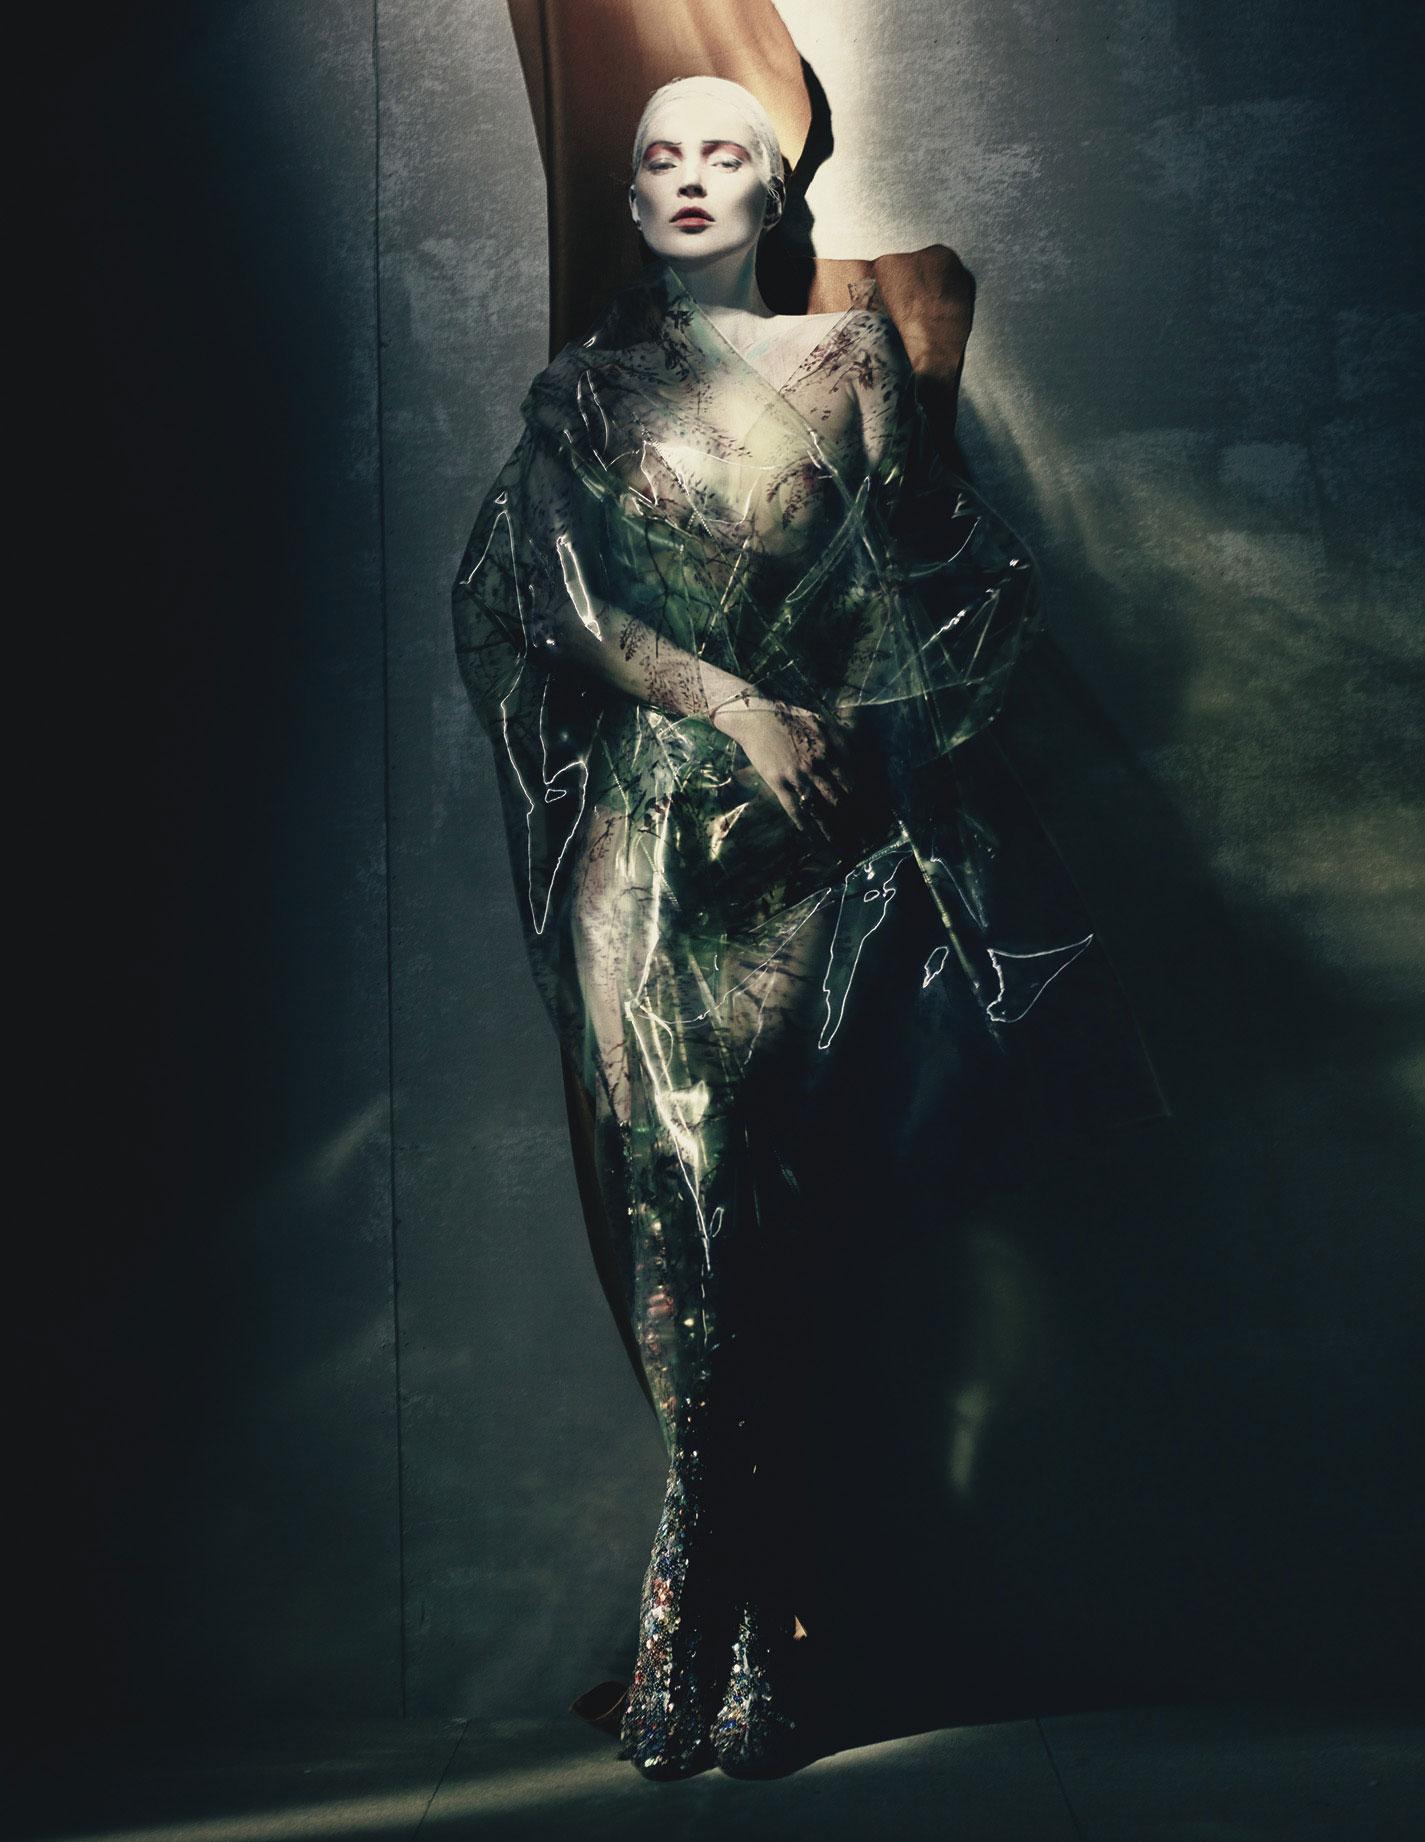 kate-moss-by-paolo-roversi-for-w-magazine-april-2015-3